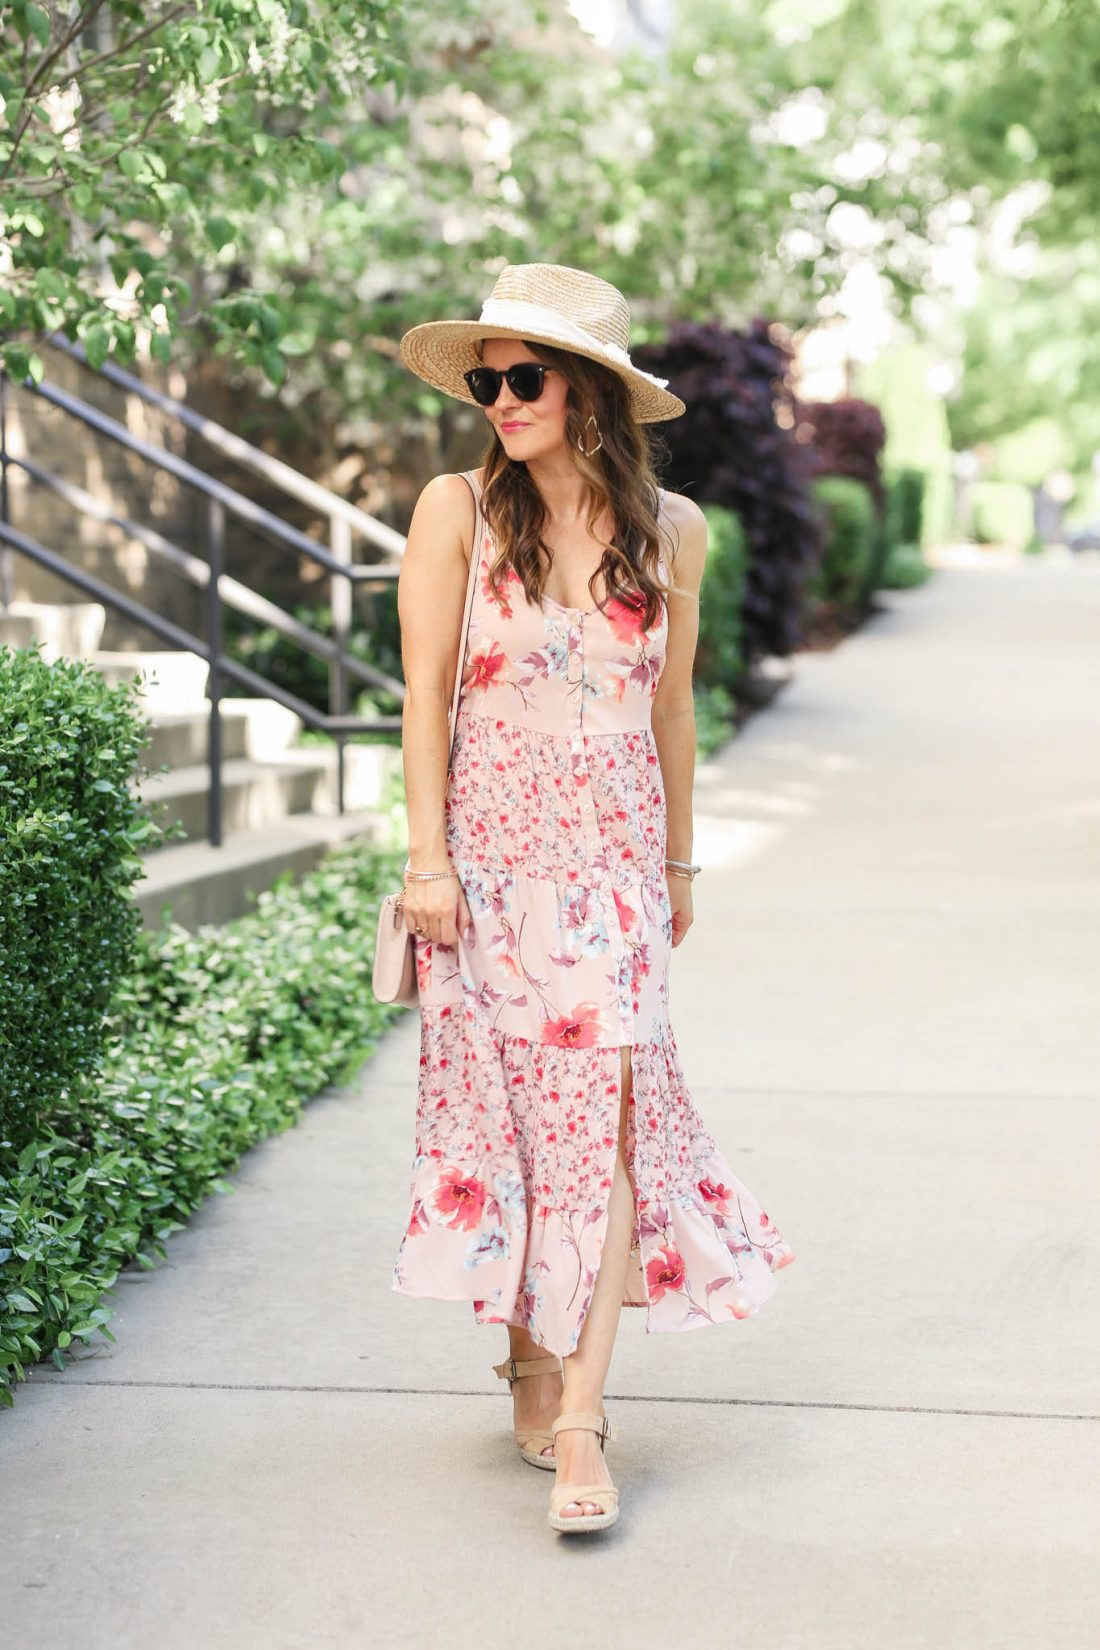 Floral Print Scoop Neck Strappy Button Front Tiered Midi Dress